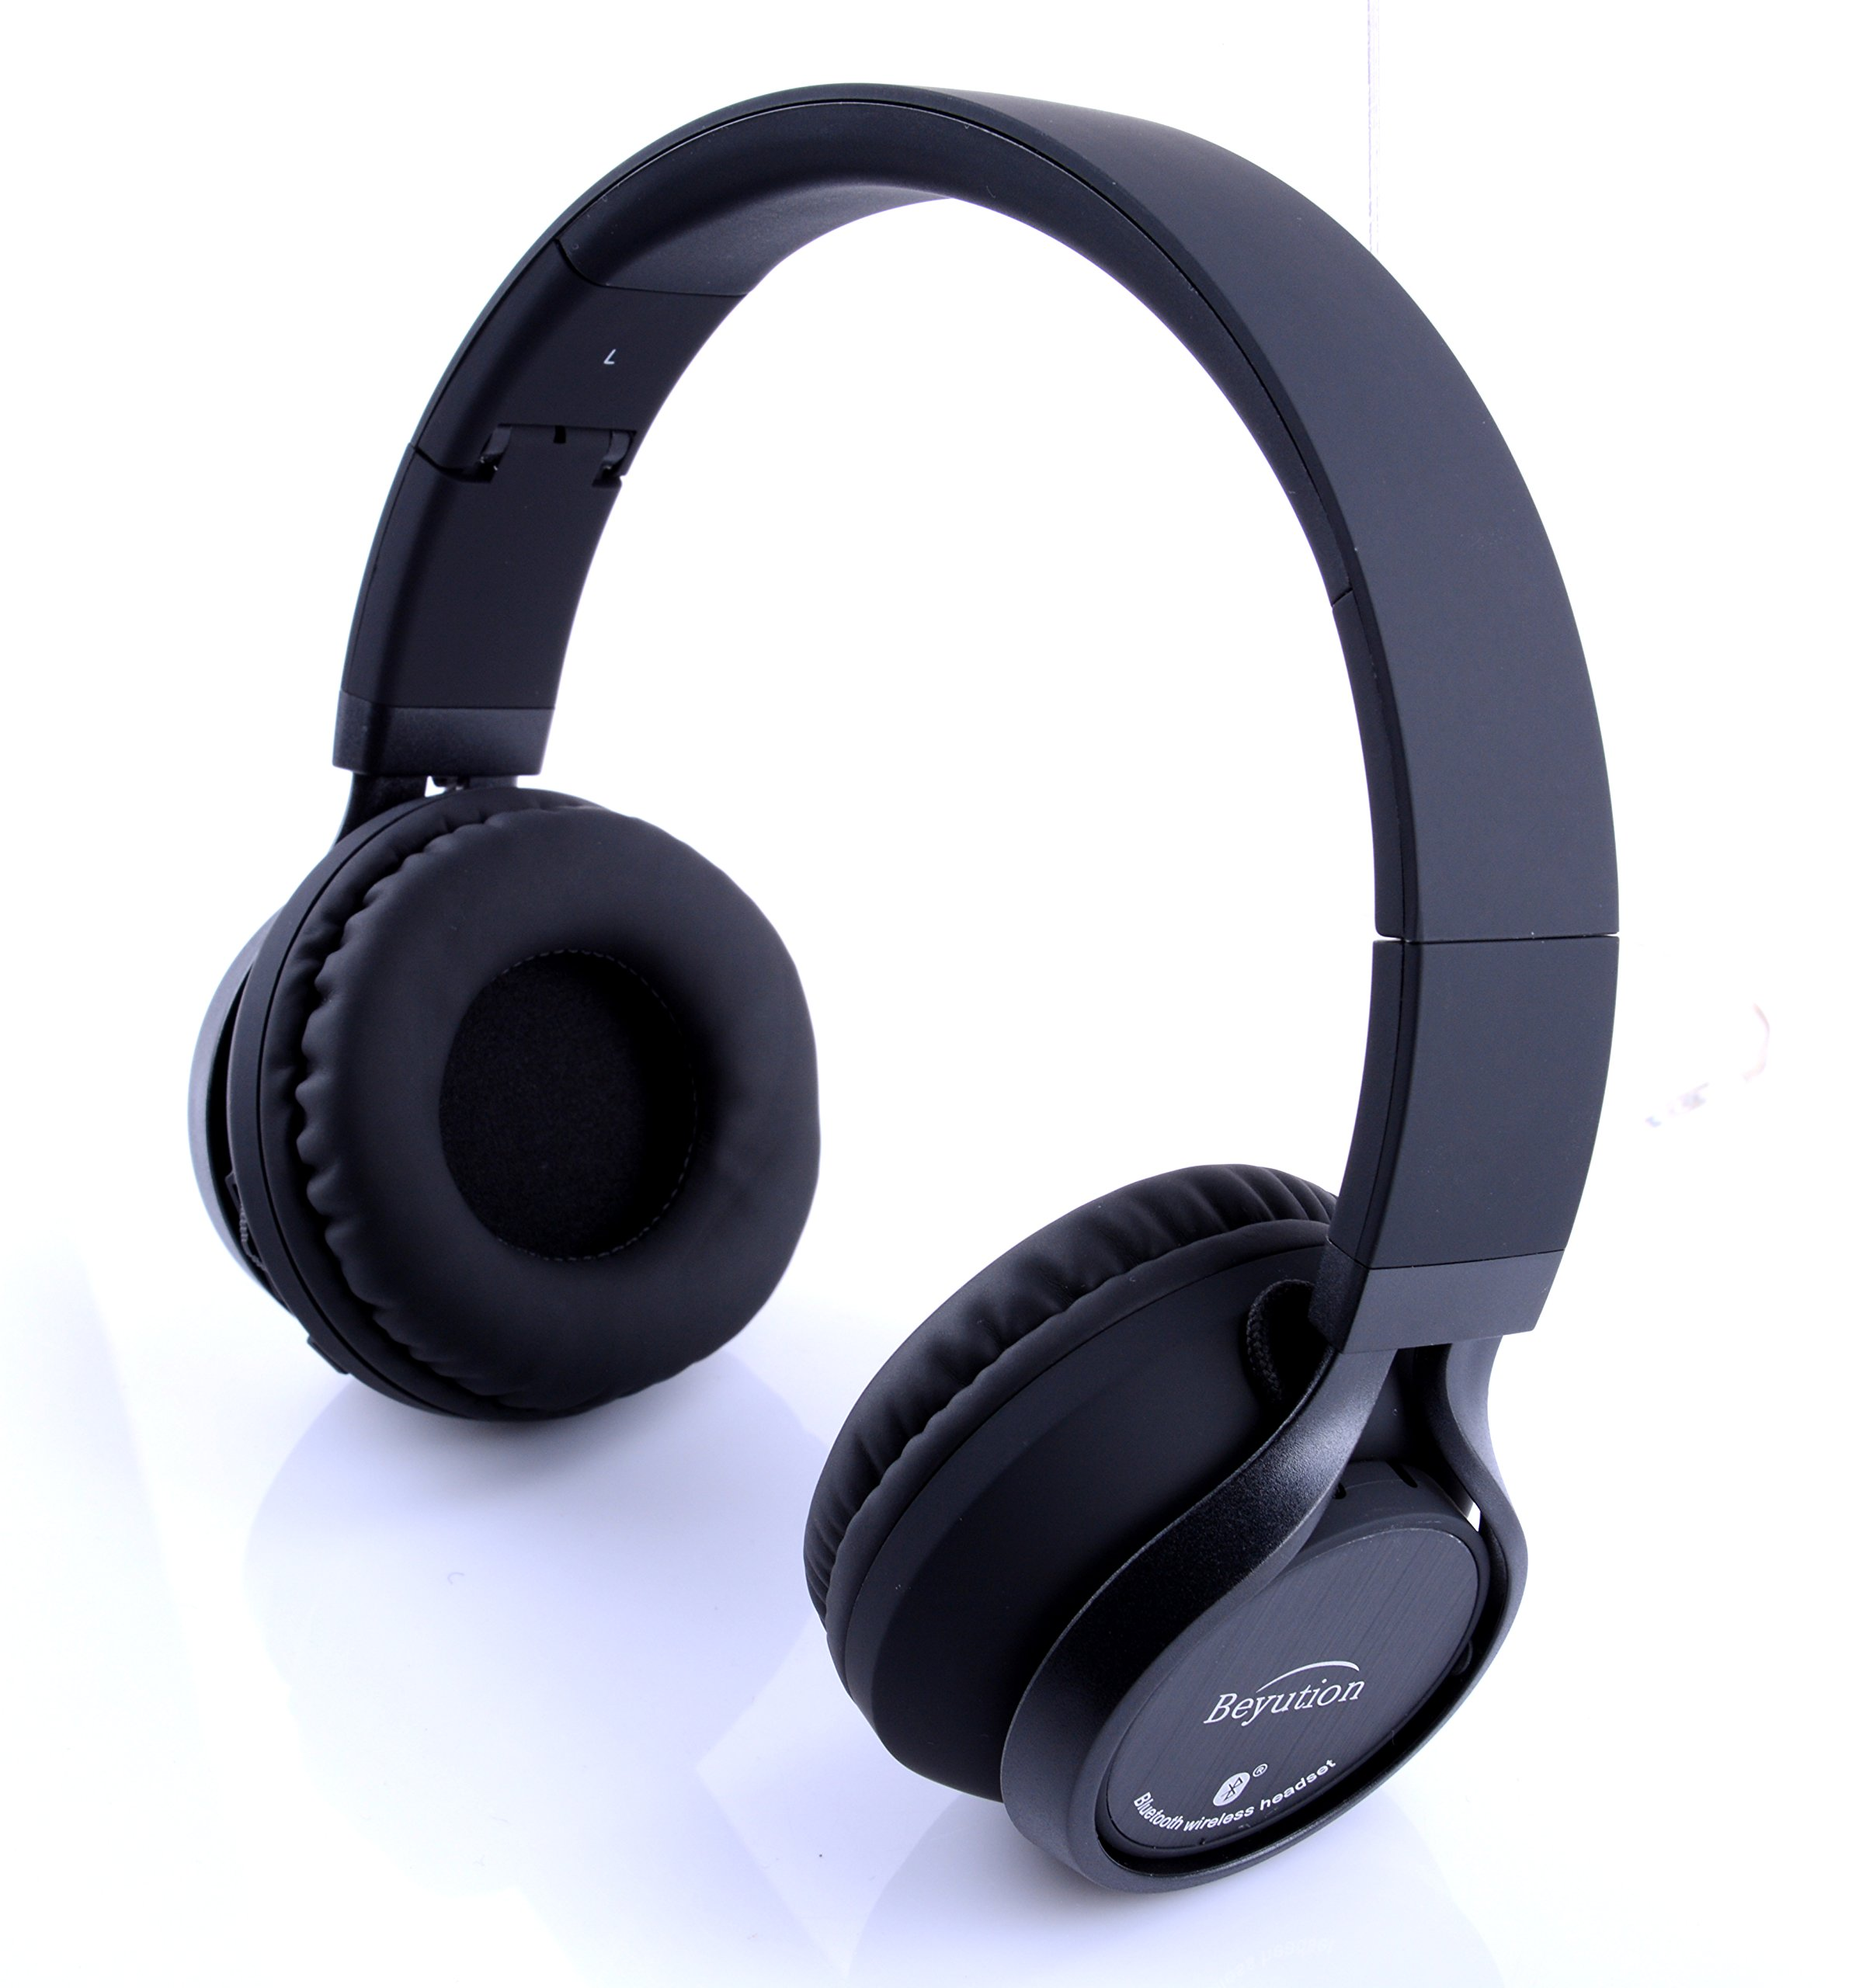 Beyution Black Metal Wireless Bluetooth Headsets Over Ear Bluetooth Headphones with Mic for iPhone 8 X Samsung Smart Phones and All Tablet Laptop with Bluetooth Funcstion (BT525-Black-Metal) by Beyution (Image #2)